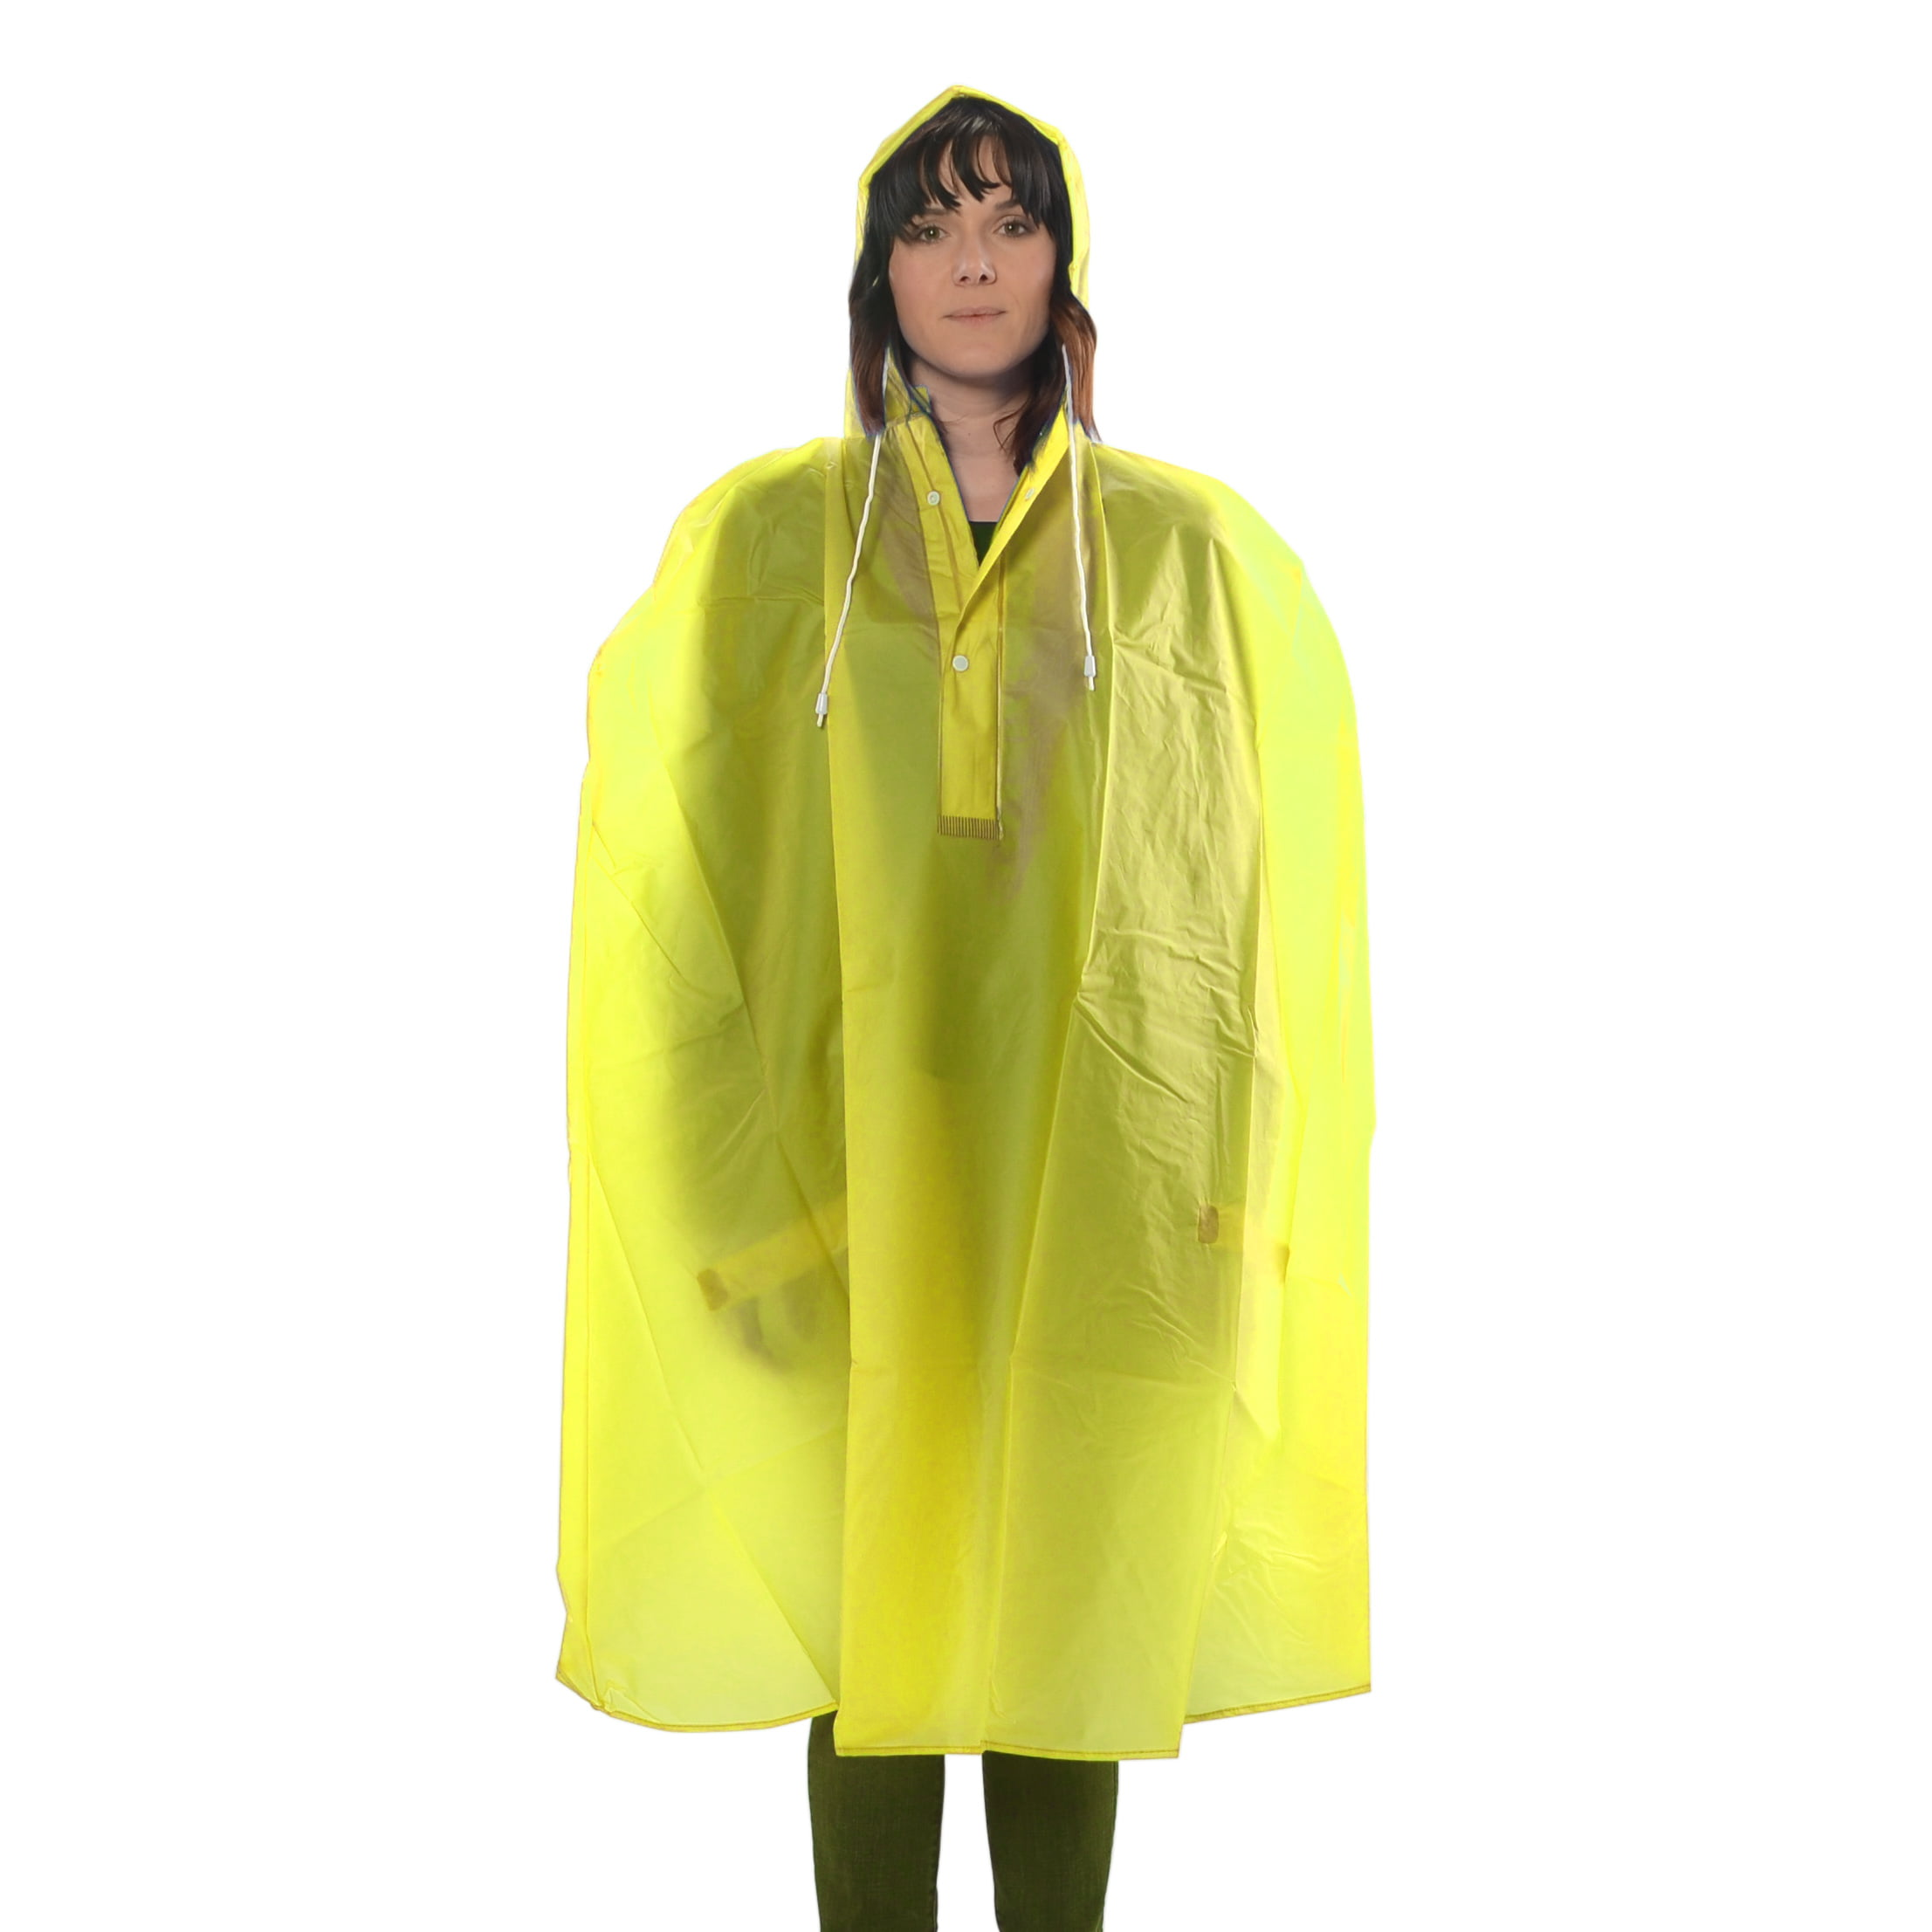 Ventura Rain Poncho by Cycle Force Group